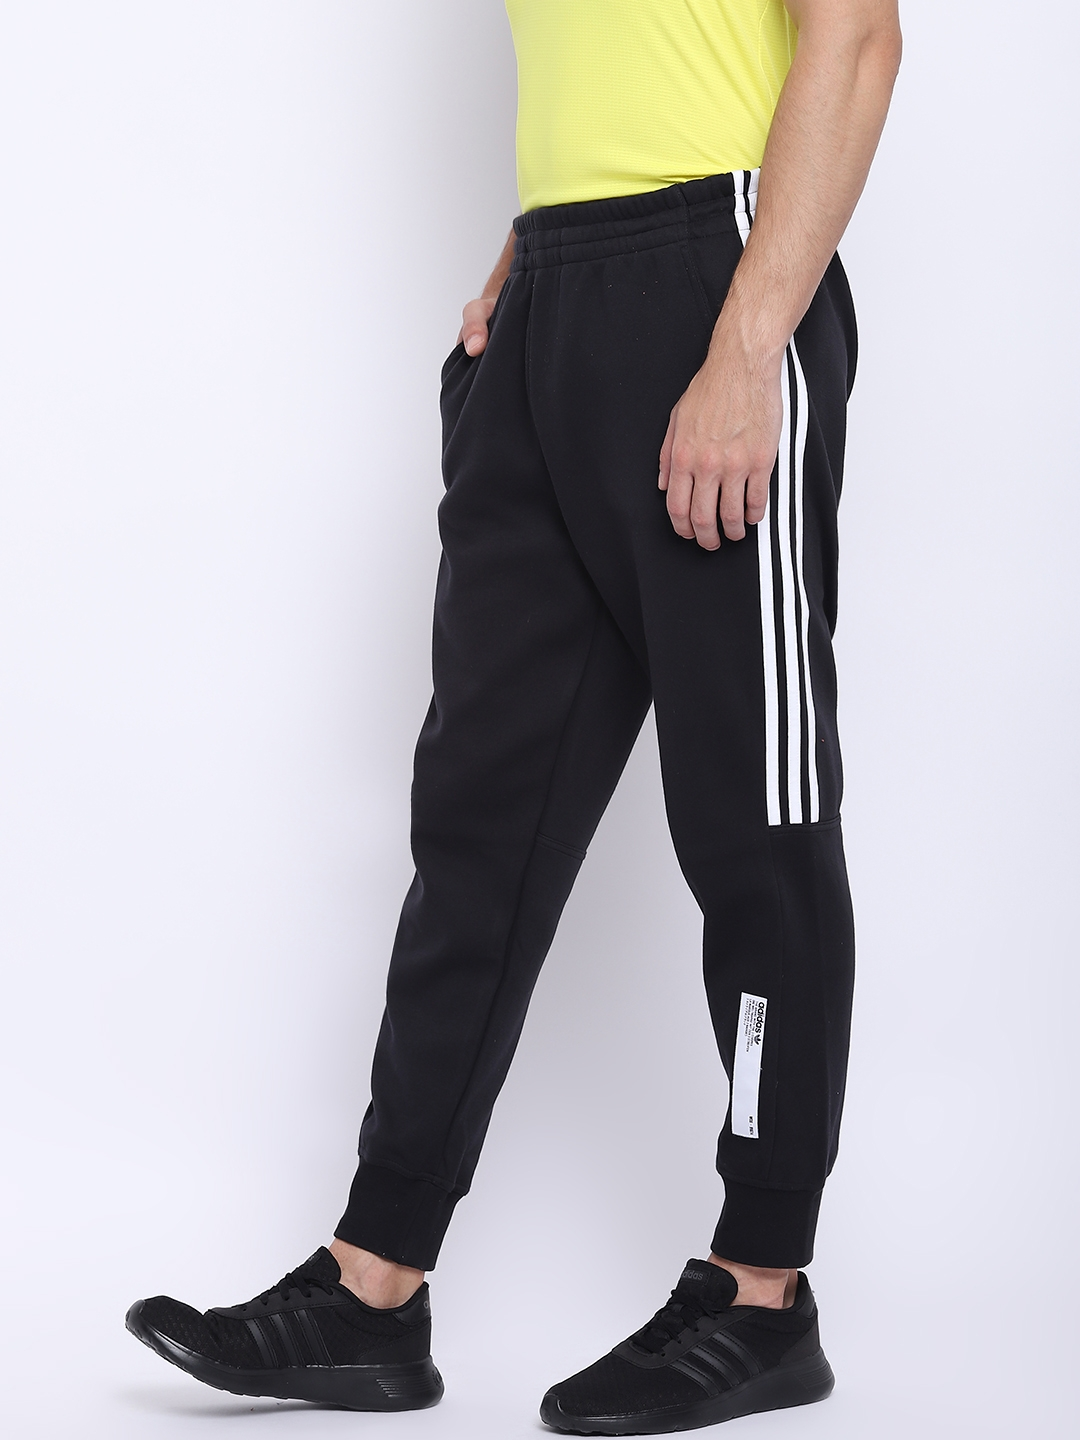 huge selection of 489c8 37d7d Buy ADIDAS Originals Men Black NMD Solid Joggers - Track Pants for ...